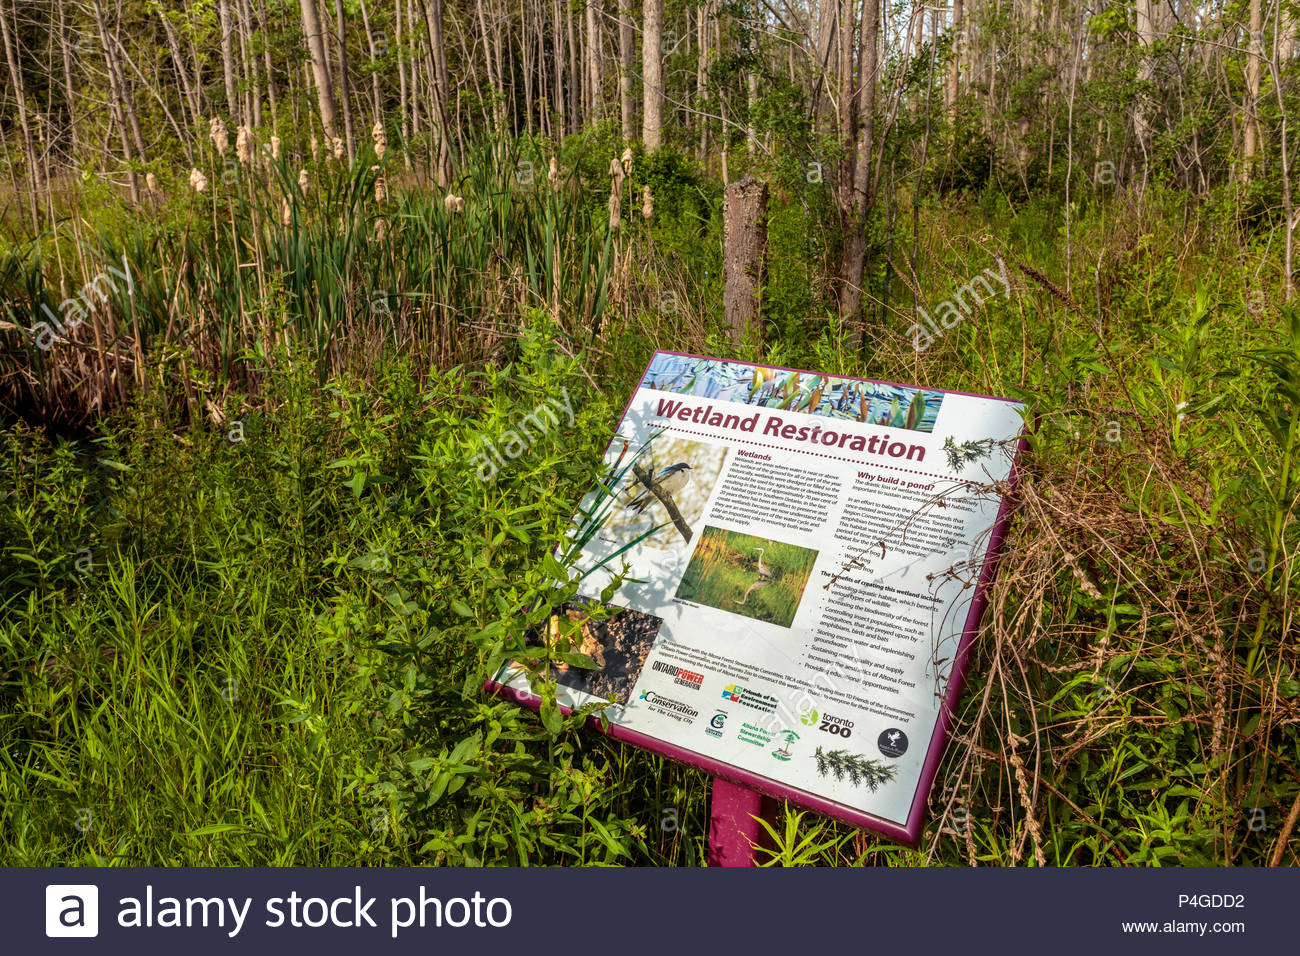 interpretive-trail-sign-beside-the-resto